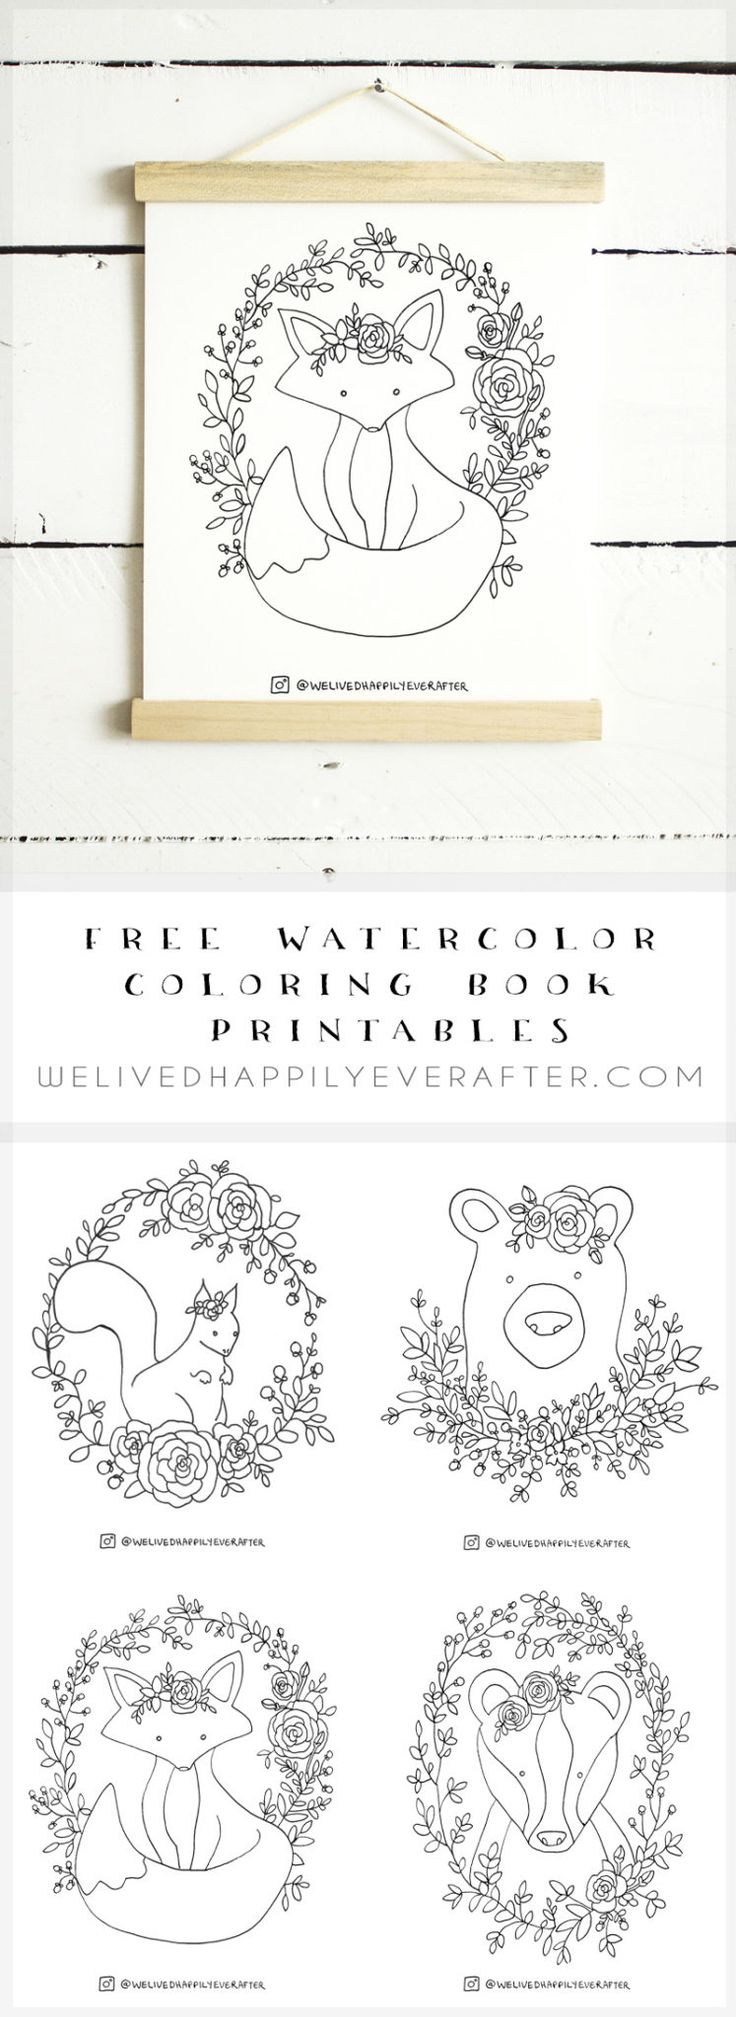 Free Watercolor Adult Coloring Book Printable Sheets - Woodland Forest Animals Part 1 (Fox, Bear, Squirrel, Badger)